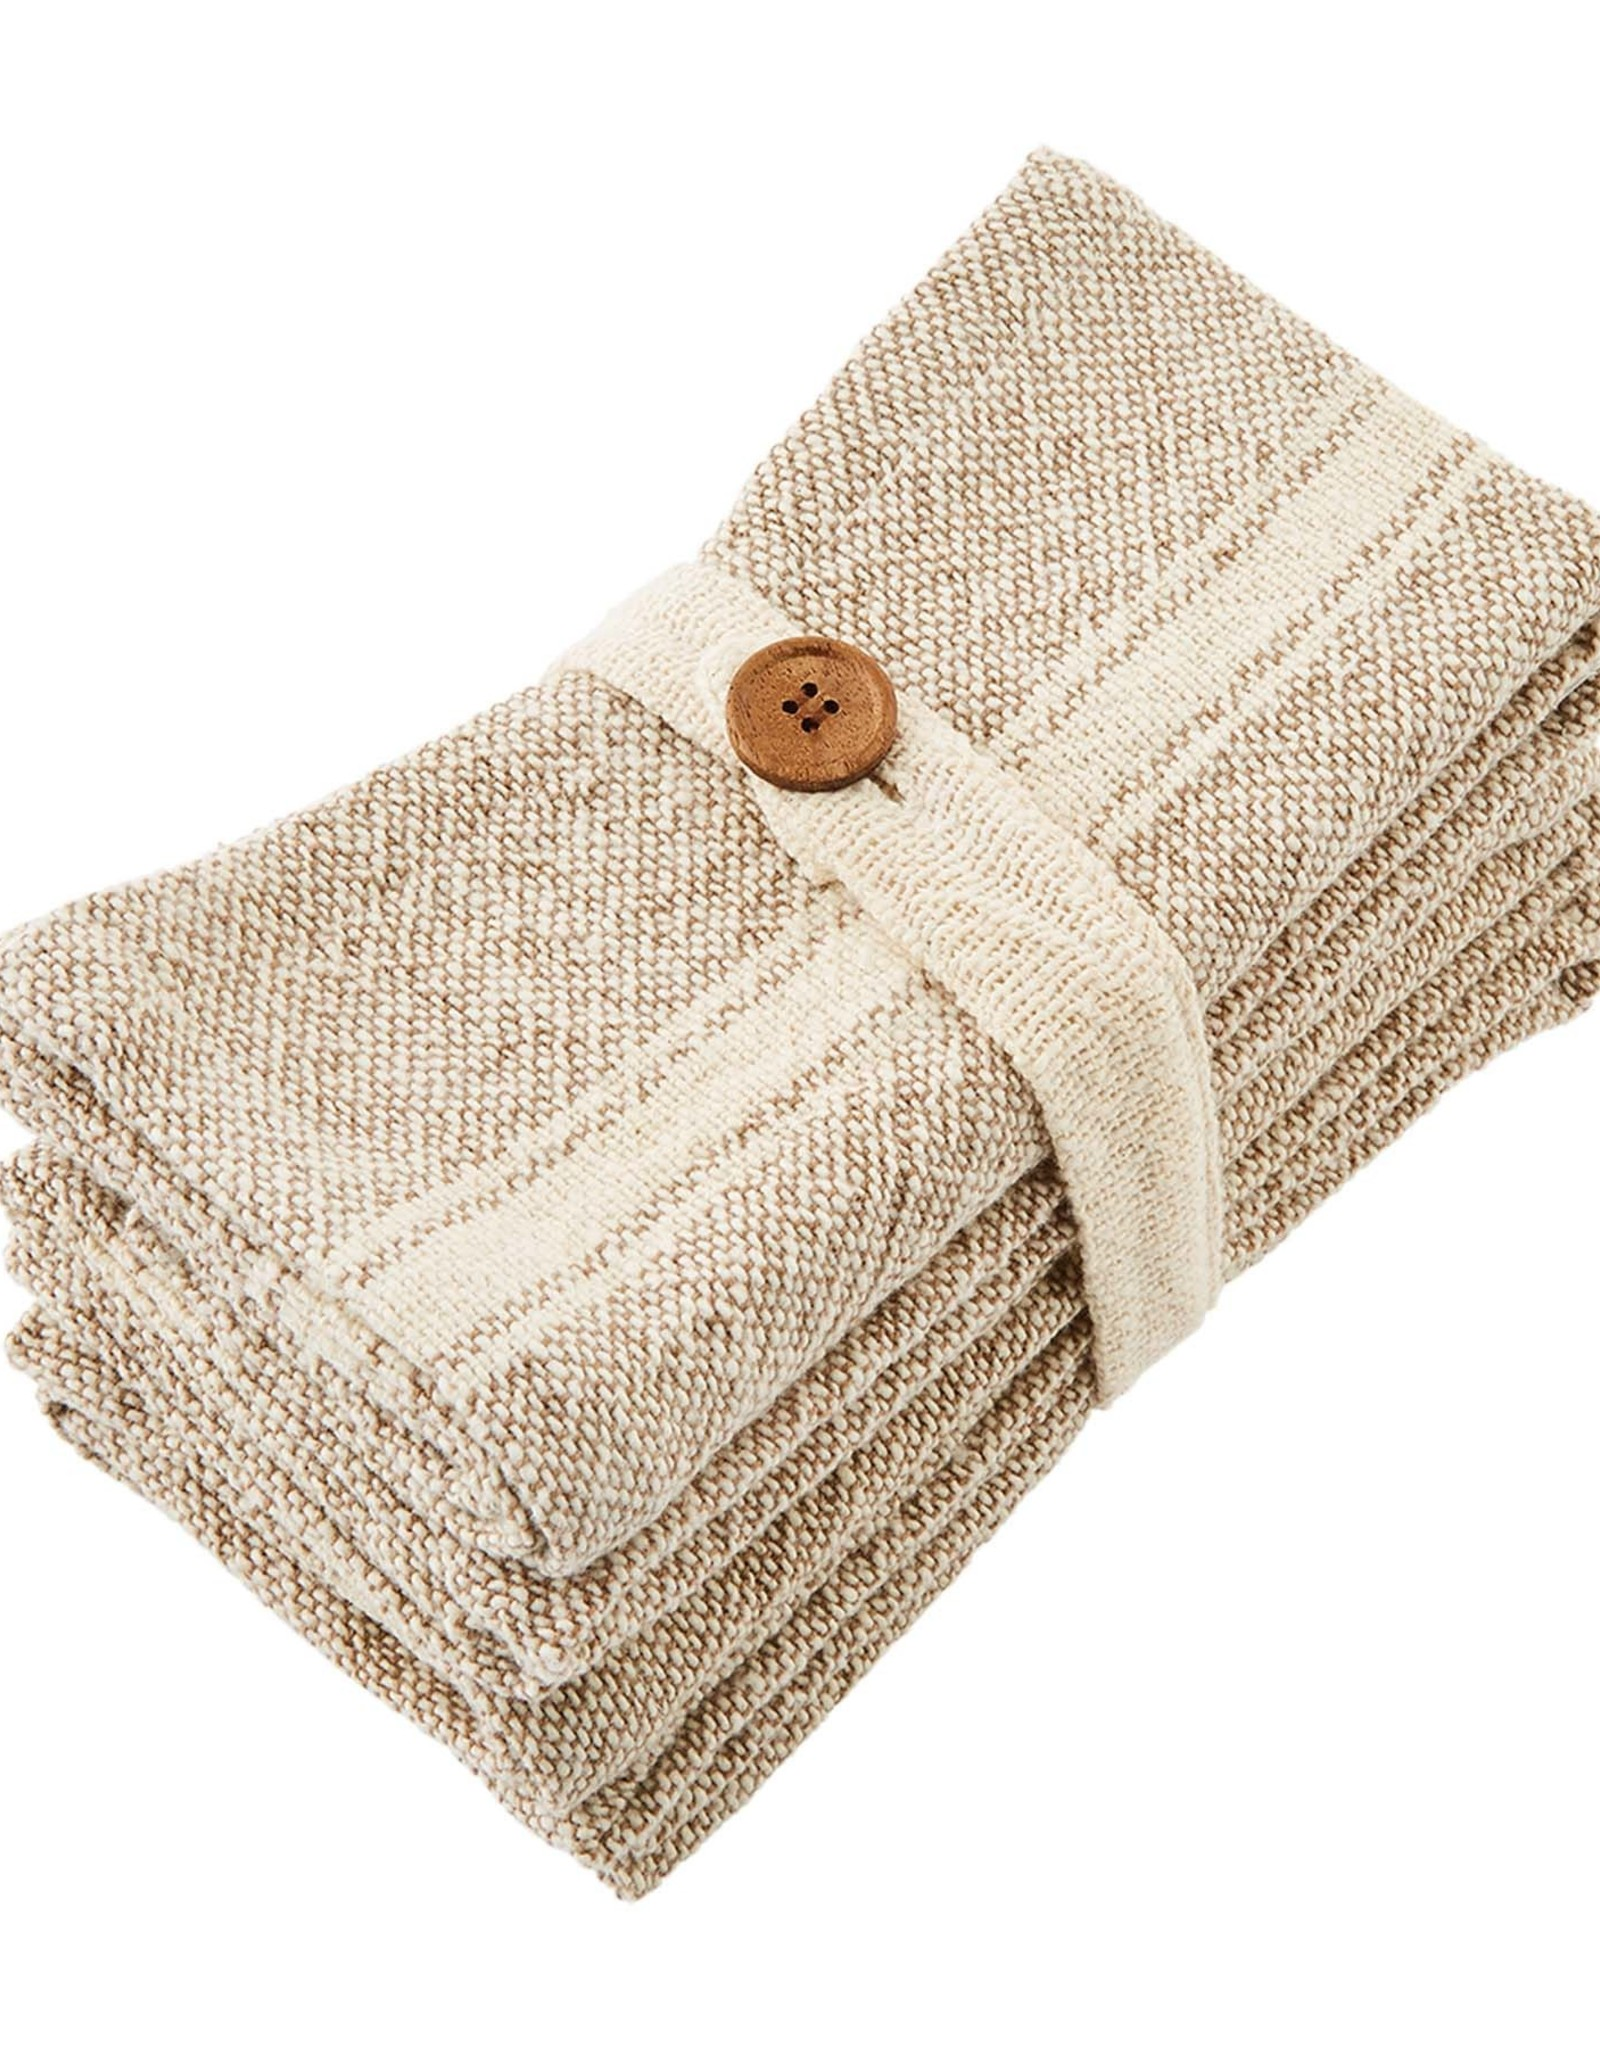 Woven Napkins  - Taupe - Set of 4